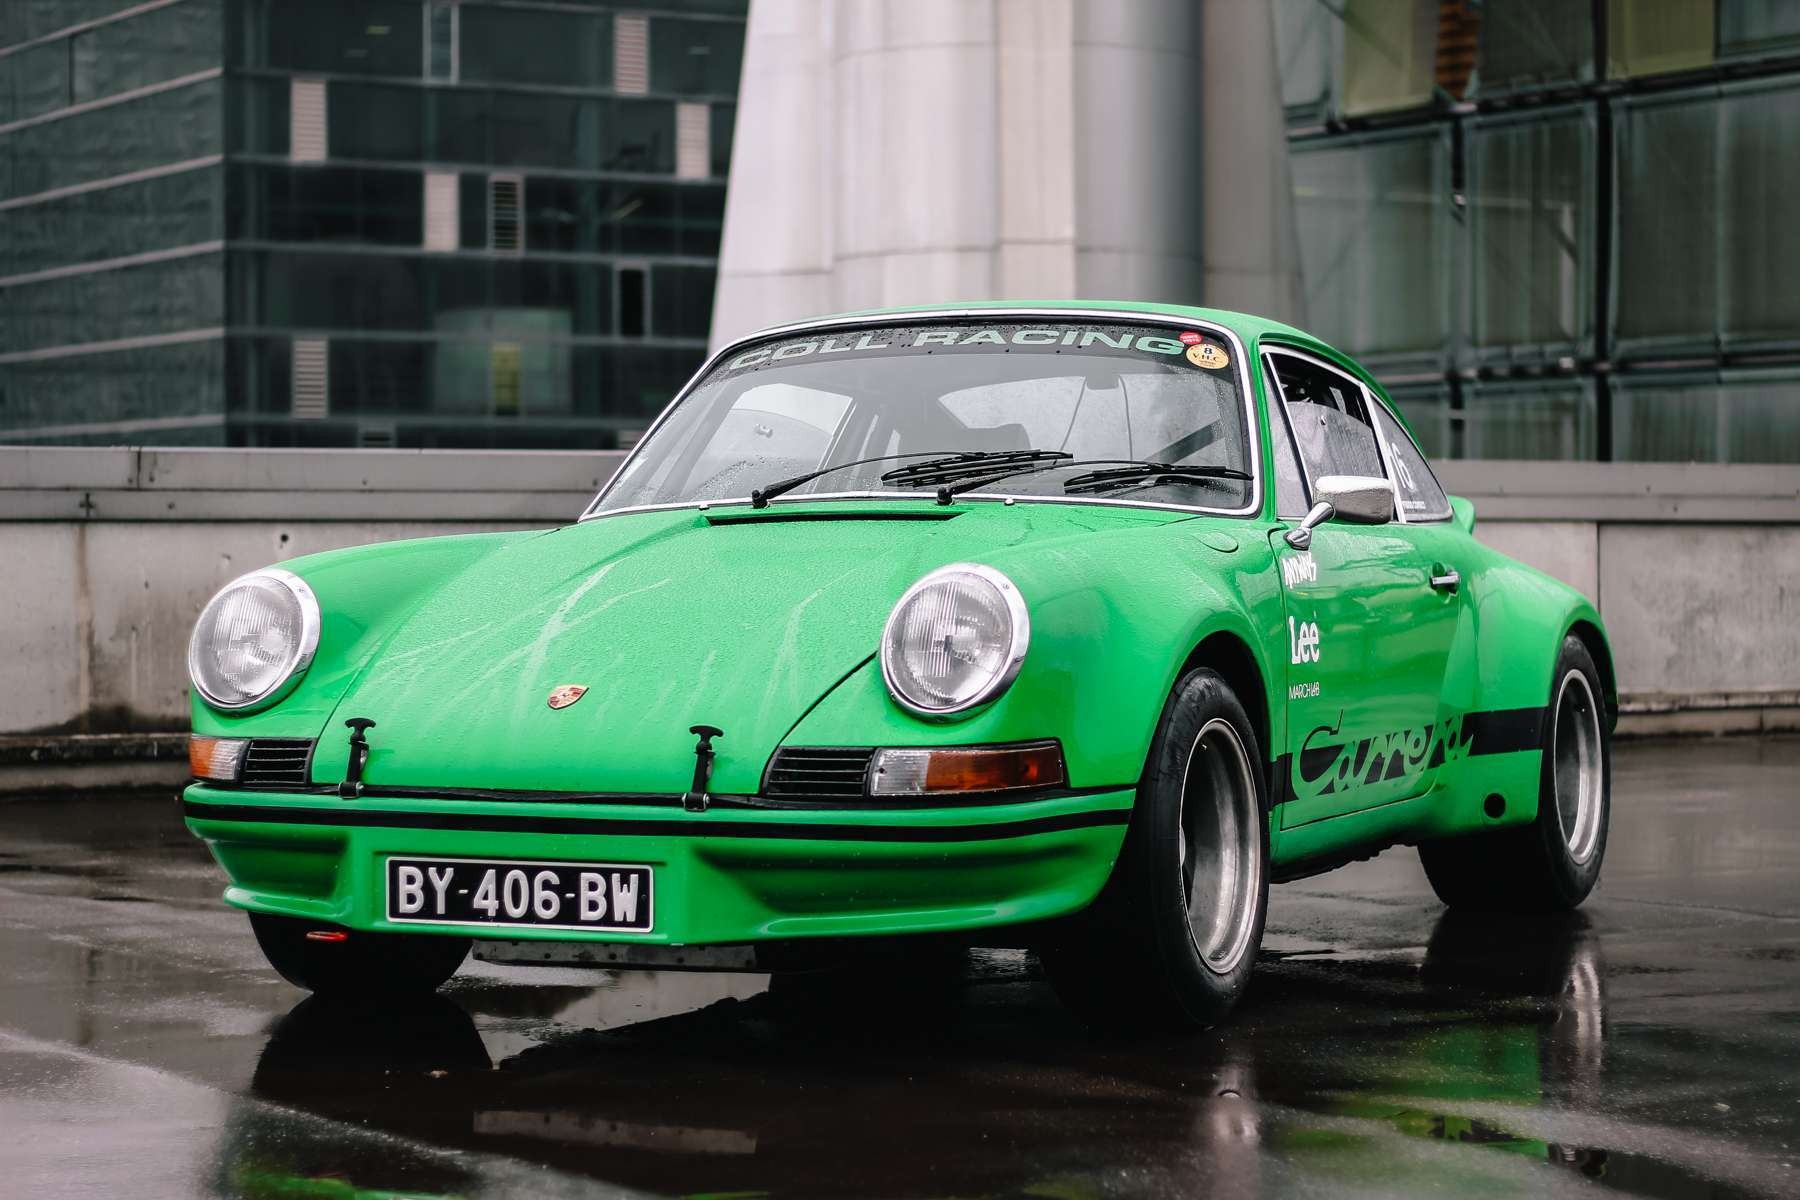 The Pleasure Of Driving A Racing Porsche: Olivier And His Viper Green 1973 911 2.8 RSR